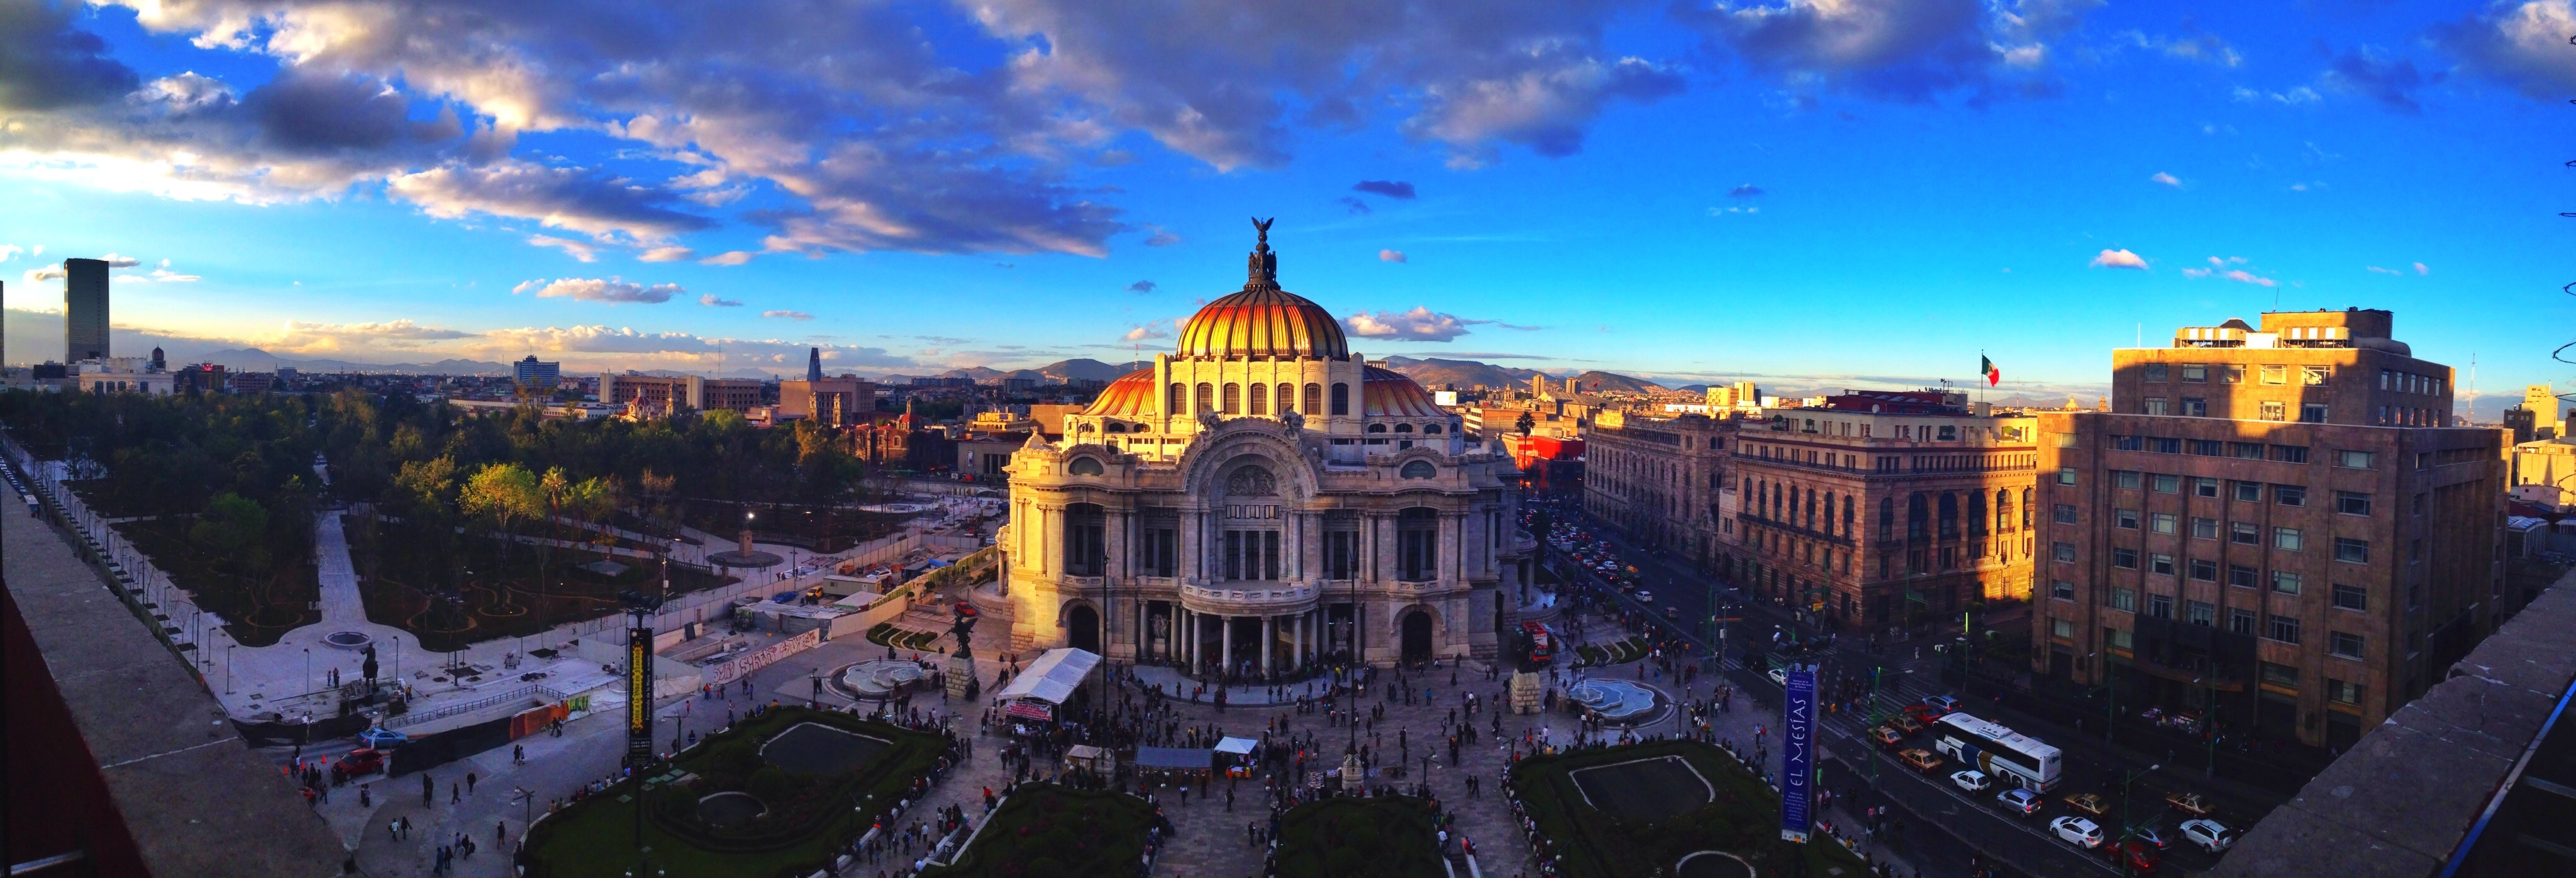 Executive Search Firm  Mexico City Mexico  Stanton Chase